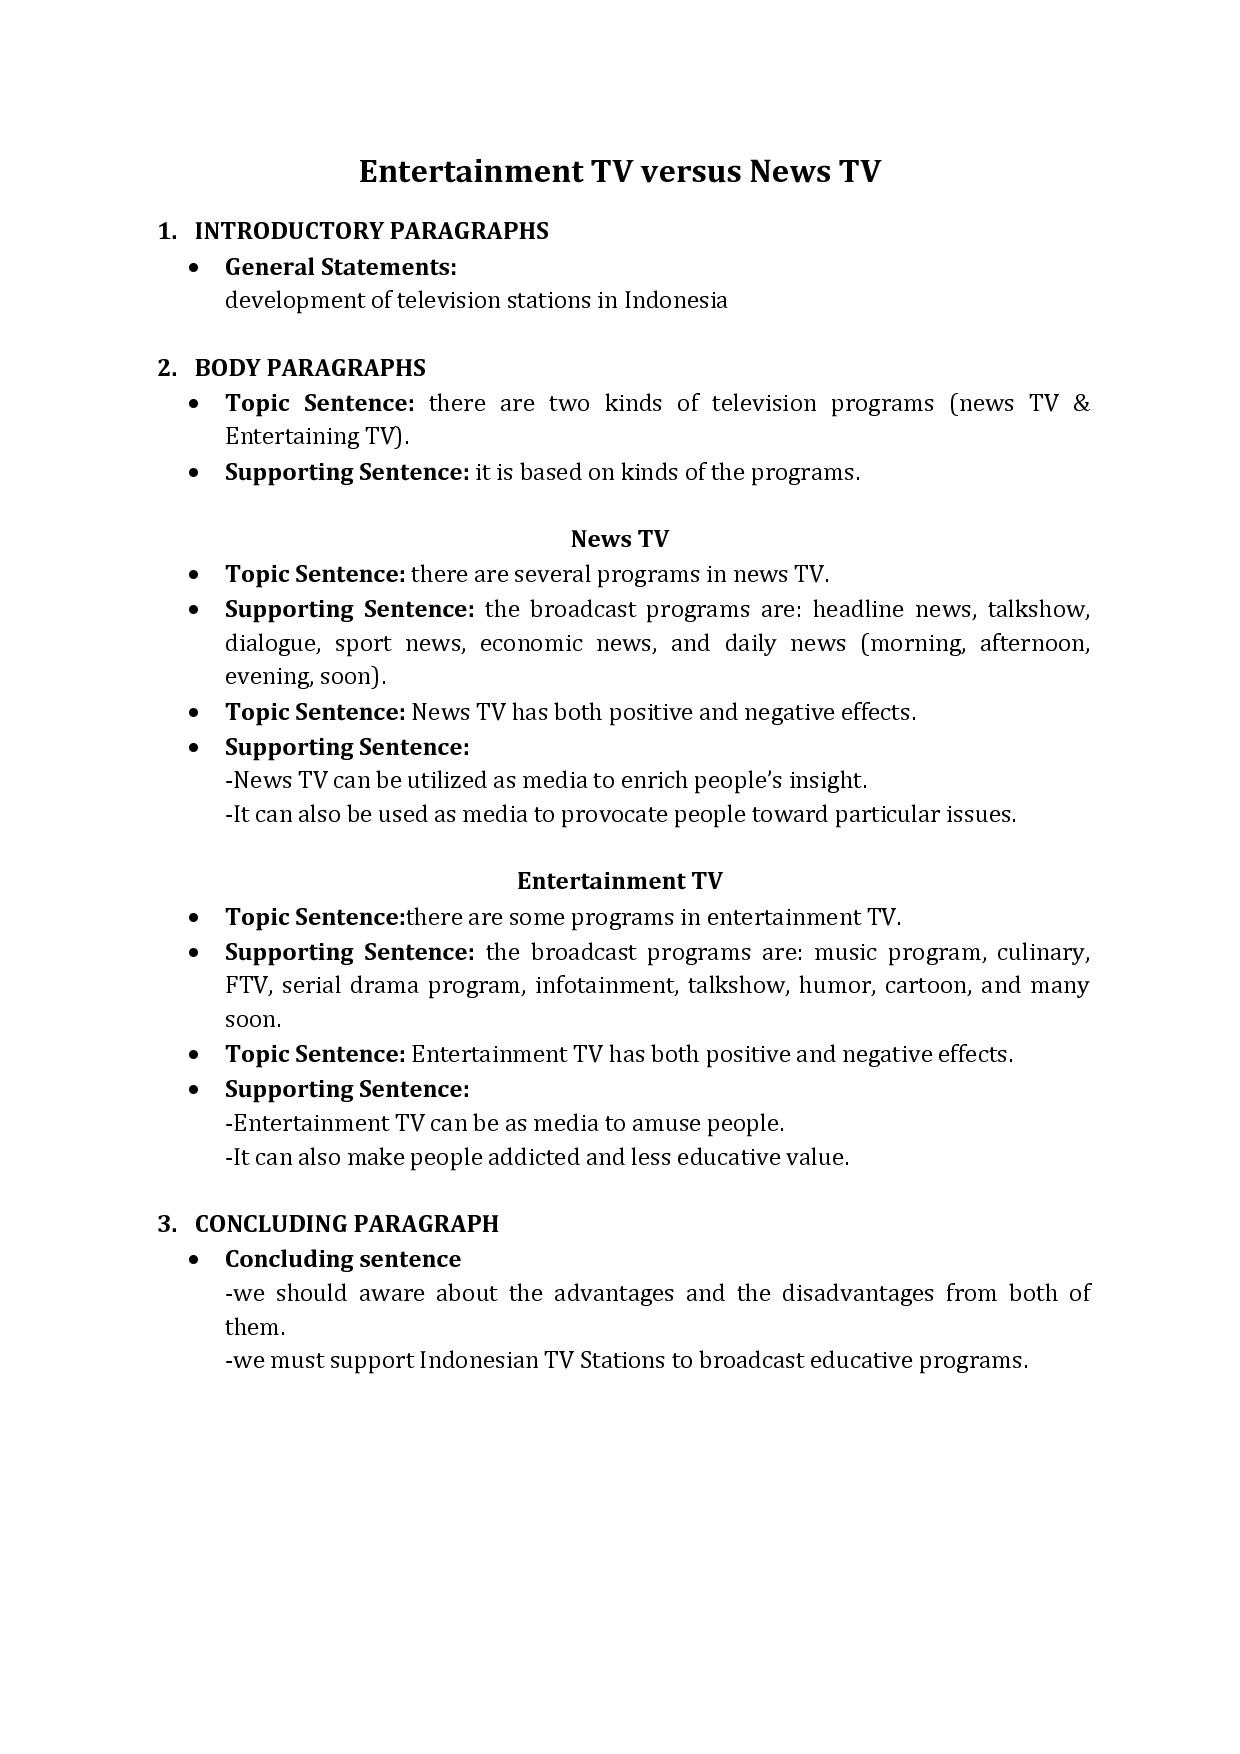 Outline Essay Economics Research Paper Outline 068 How To Make